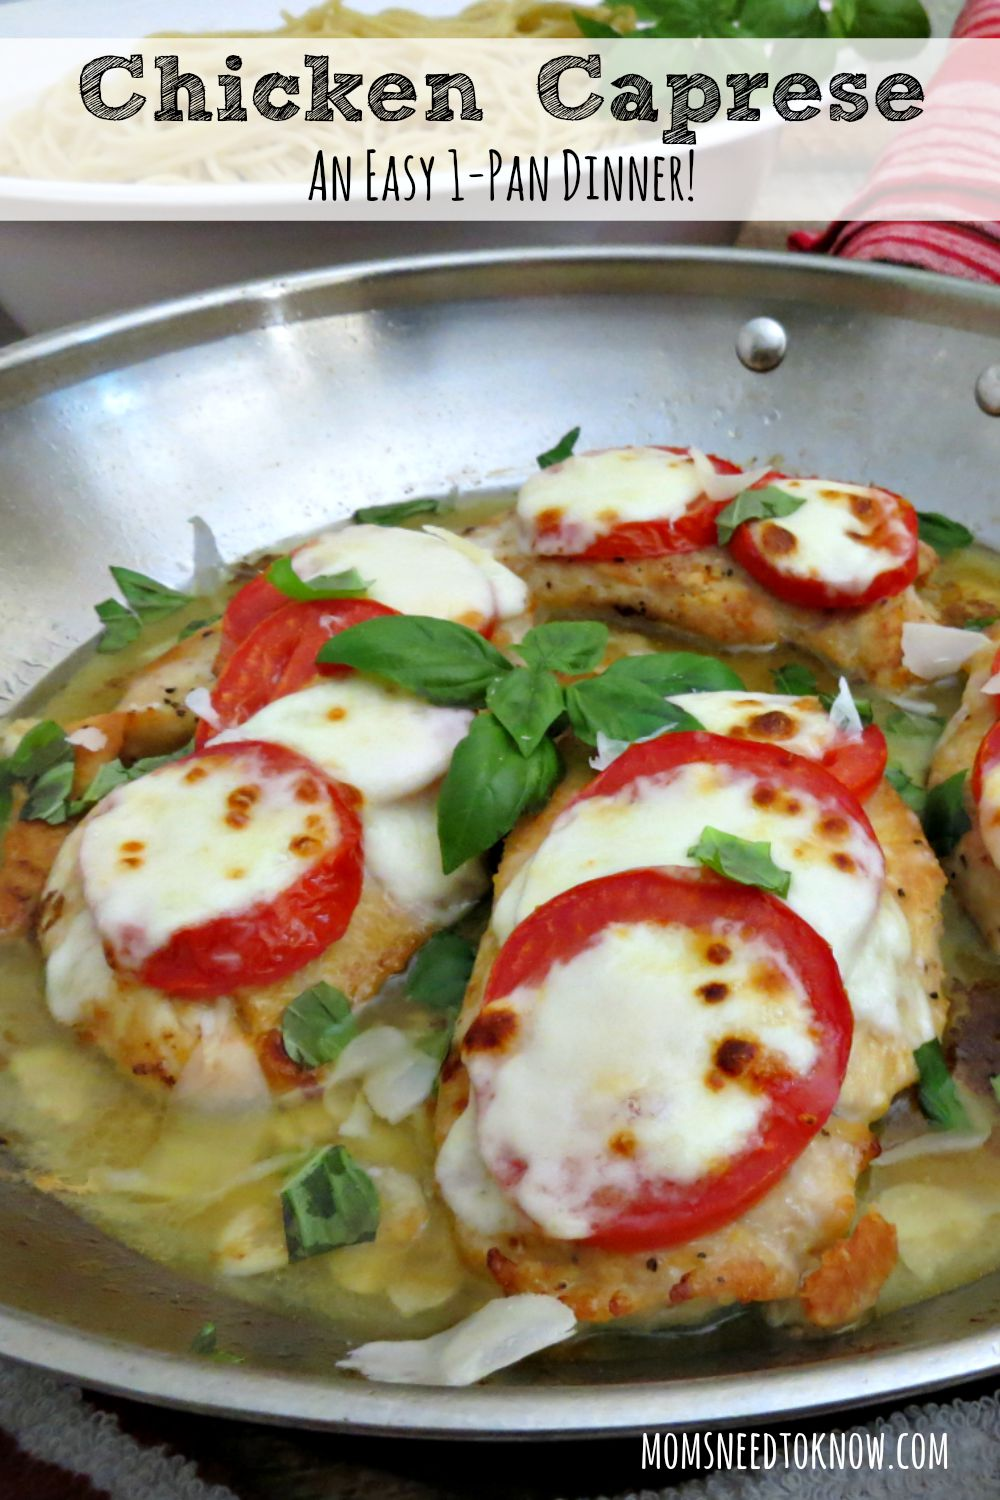 This Chicken Caprese recipe is a lighter version of traditional Chicken Parmesan. Packed with flavor, it is a great way to use up the fresh tomatoes and basil from your garden!